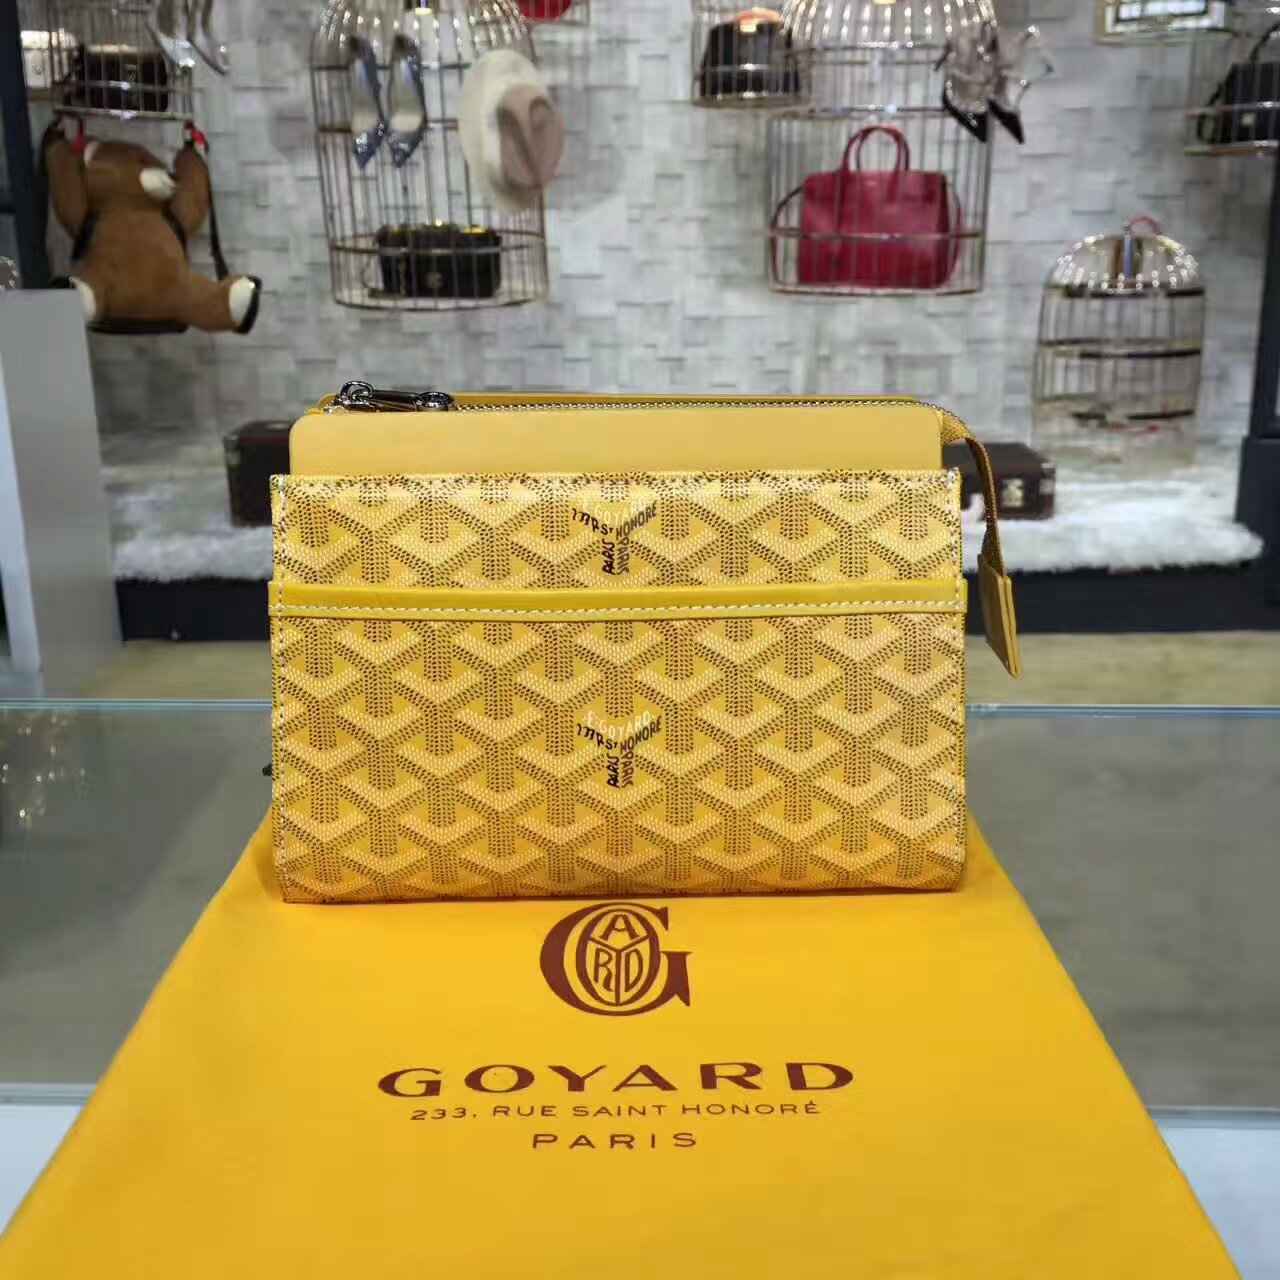 Goyard Cosmetic Bag Yellow Toiletry Case